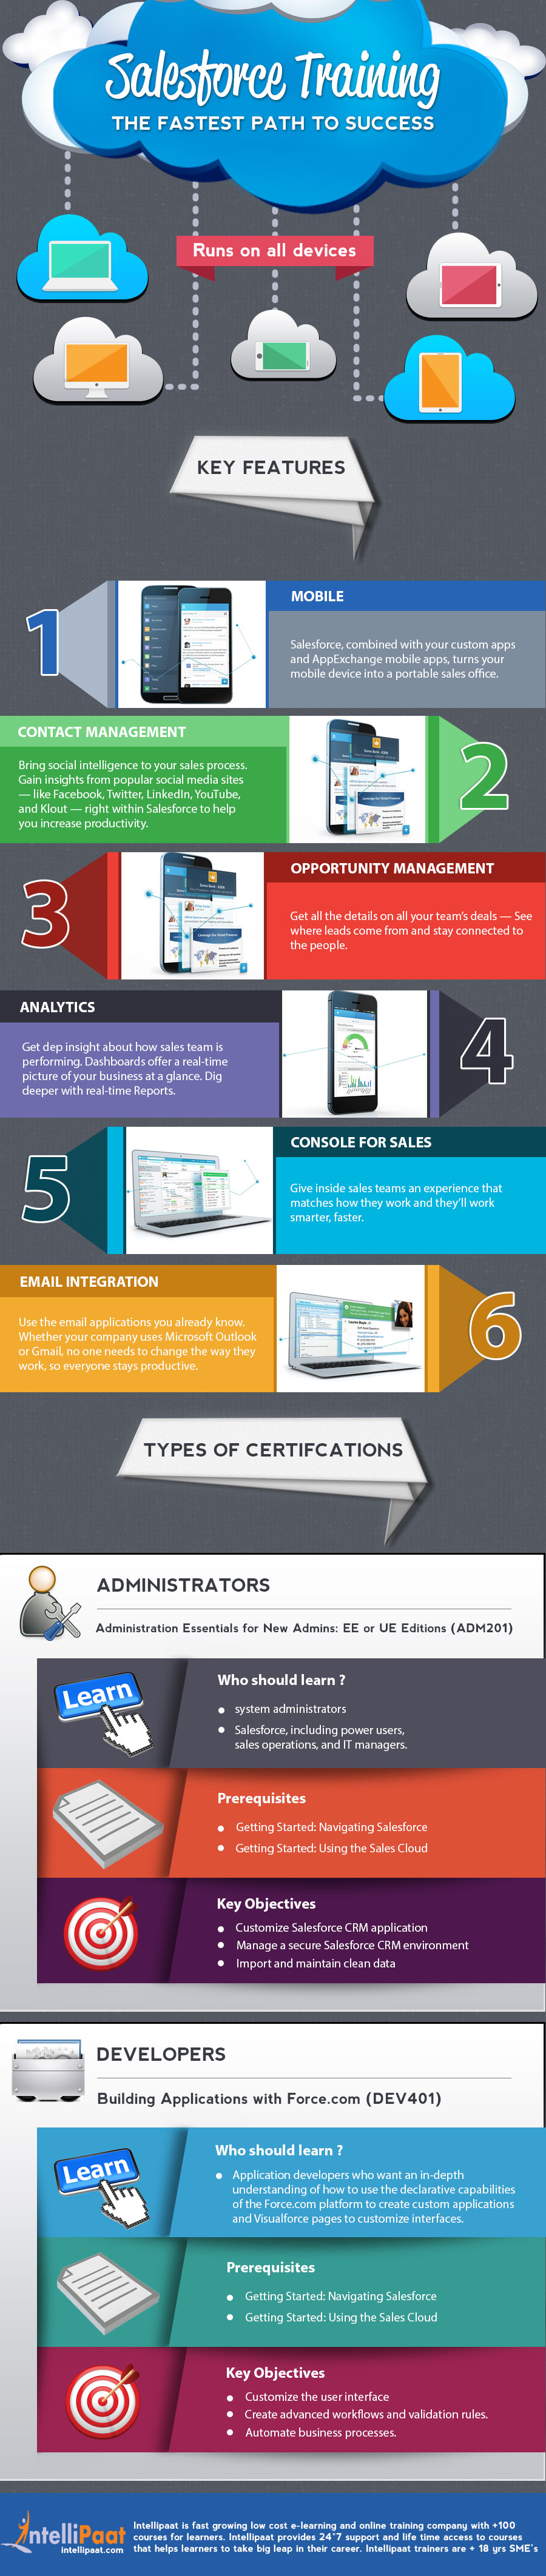 salesforce training intellipaat sales path certification course success fastest crm email